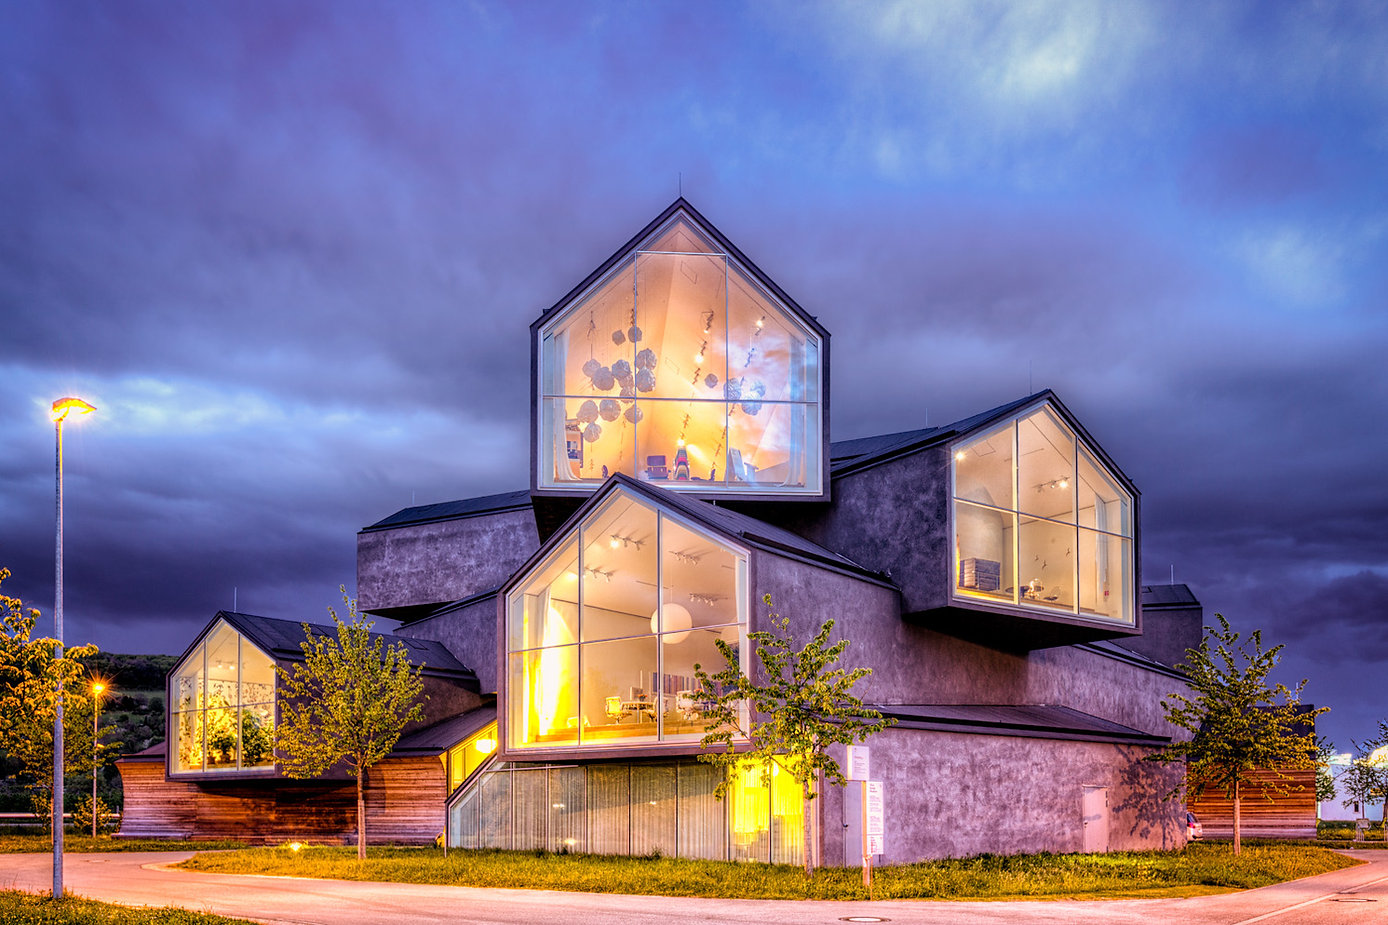 VitraHaus-A-design-project-on-the-German